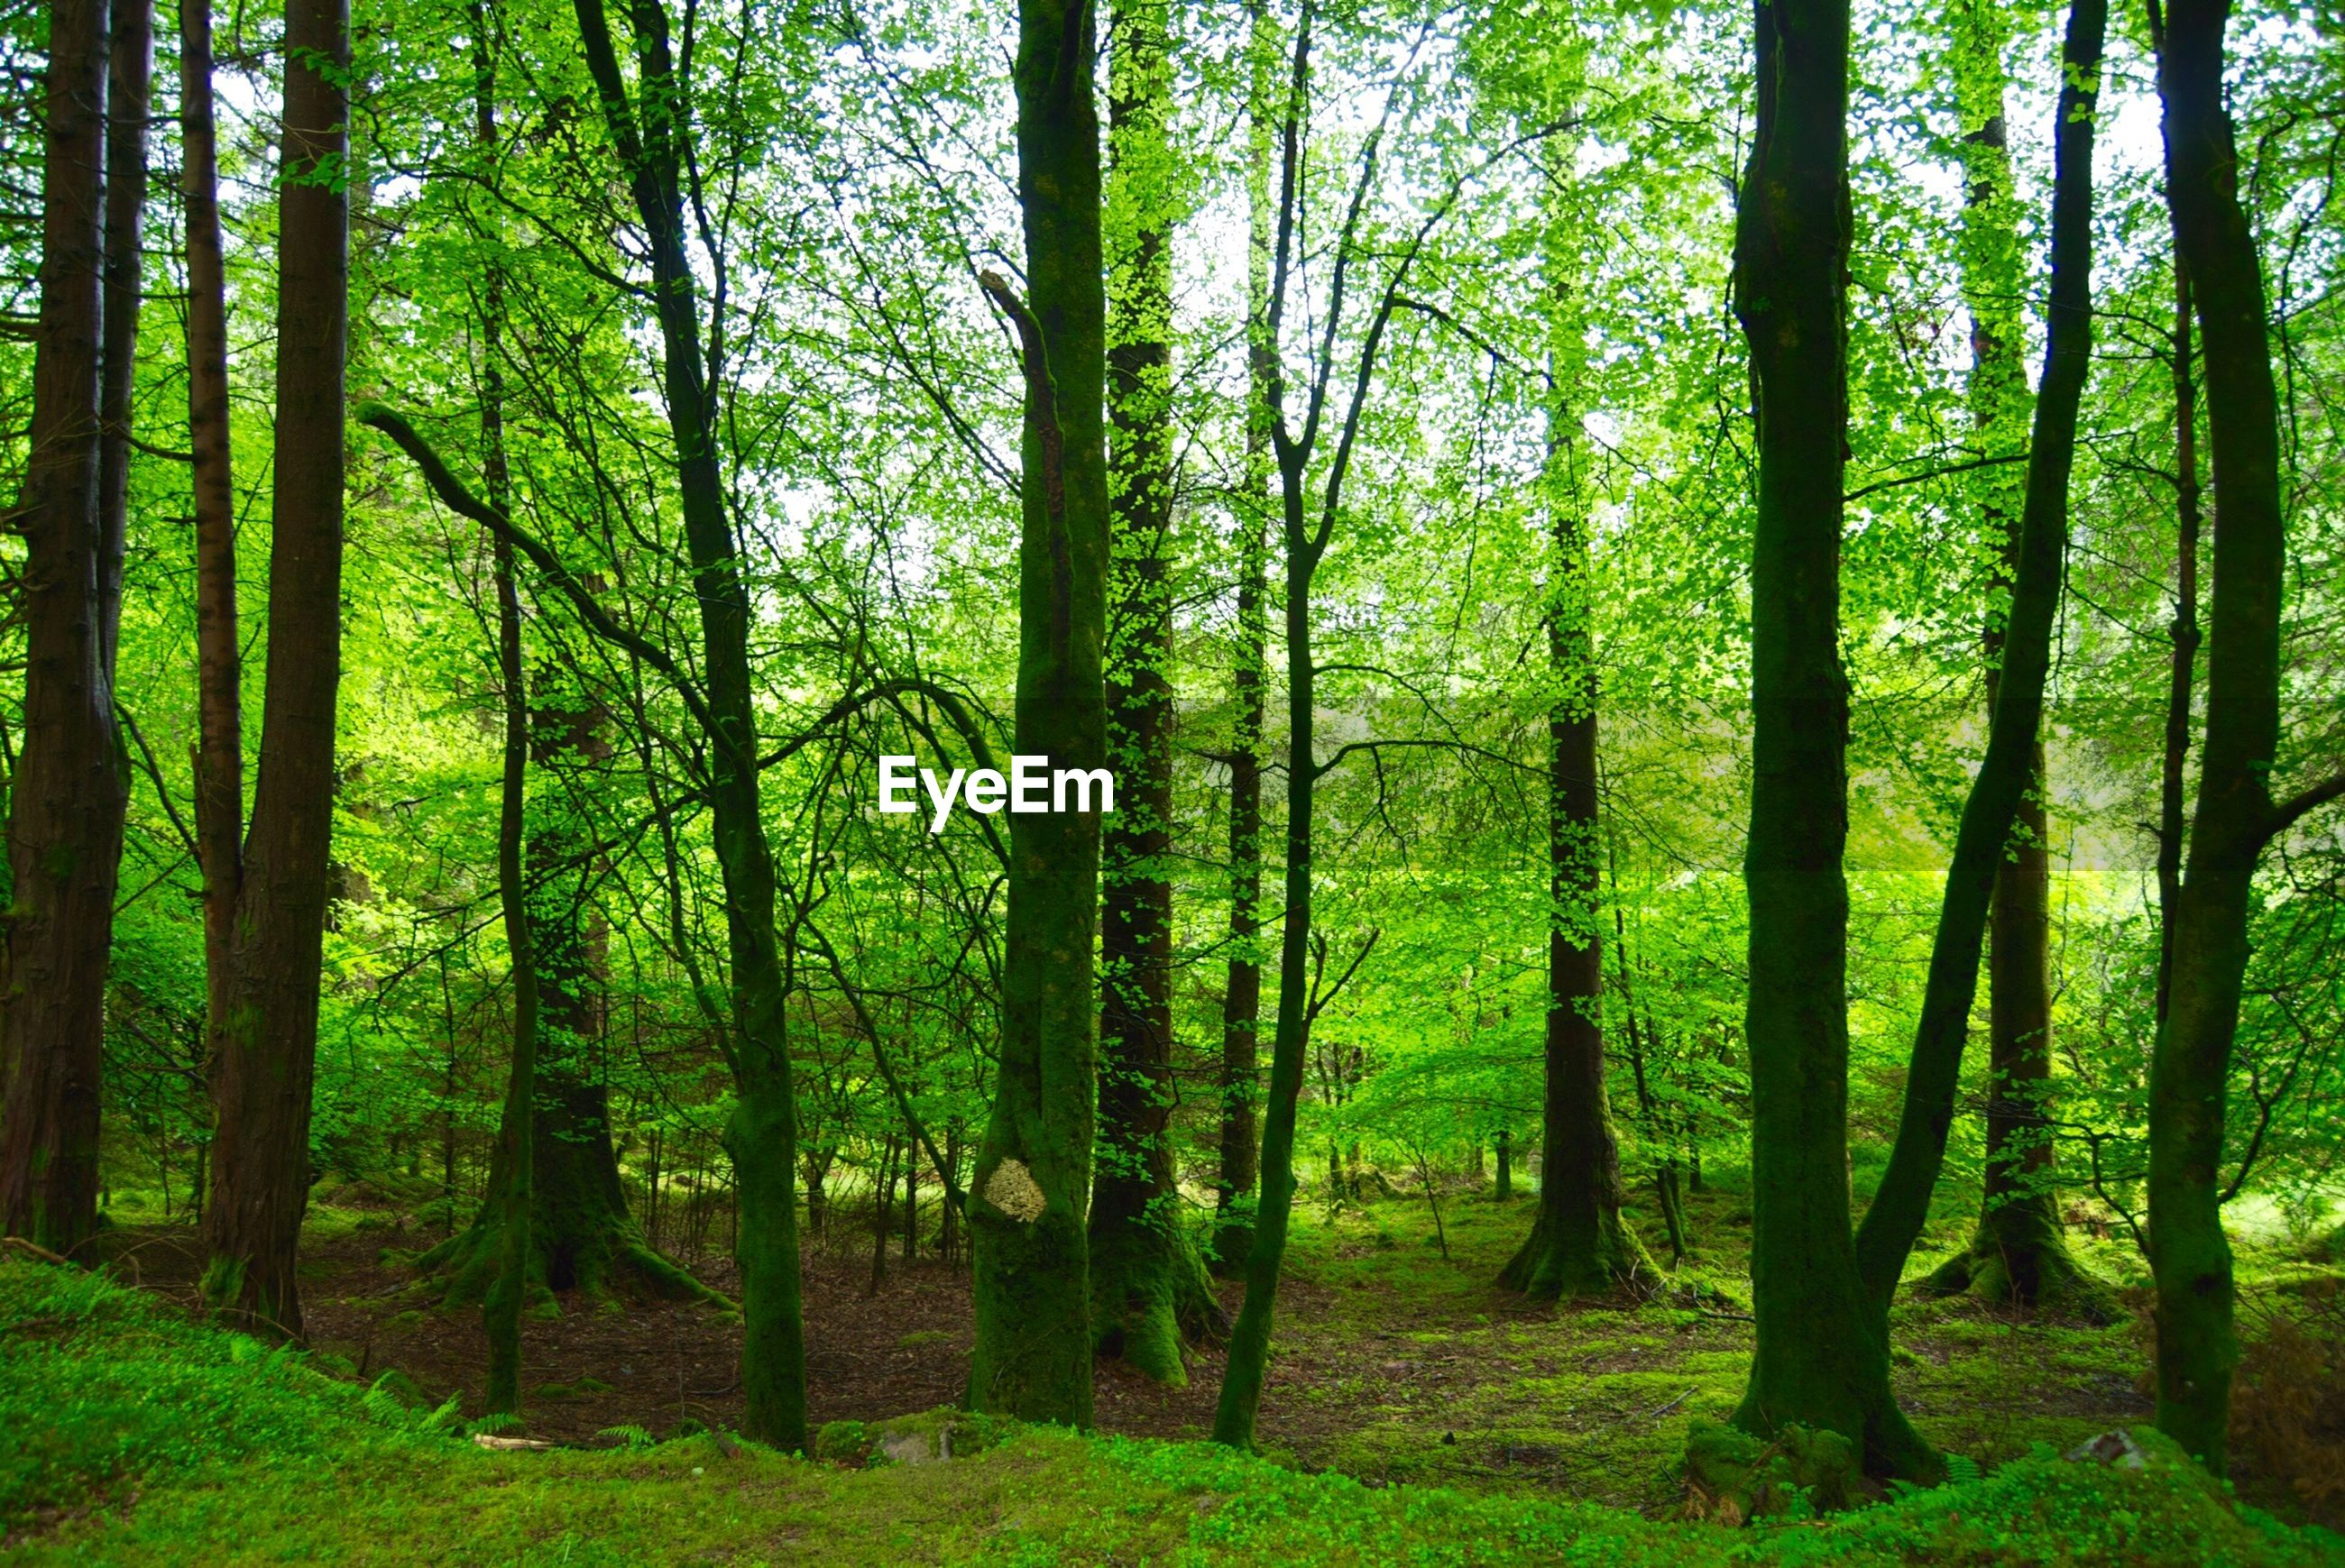 View of lush trees in the forest